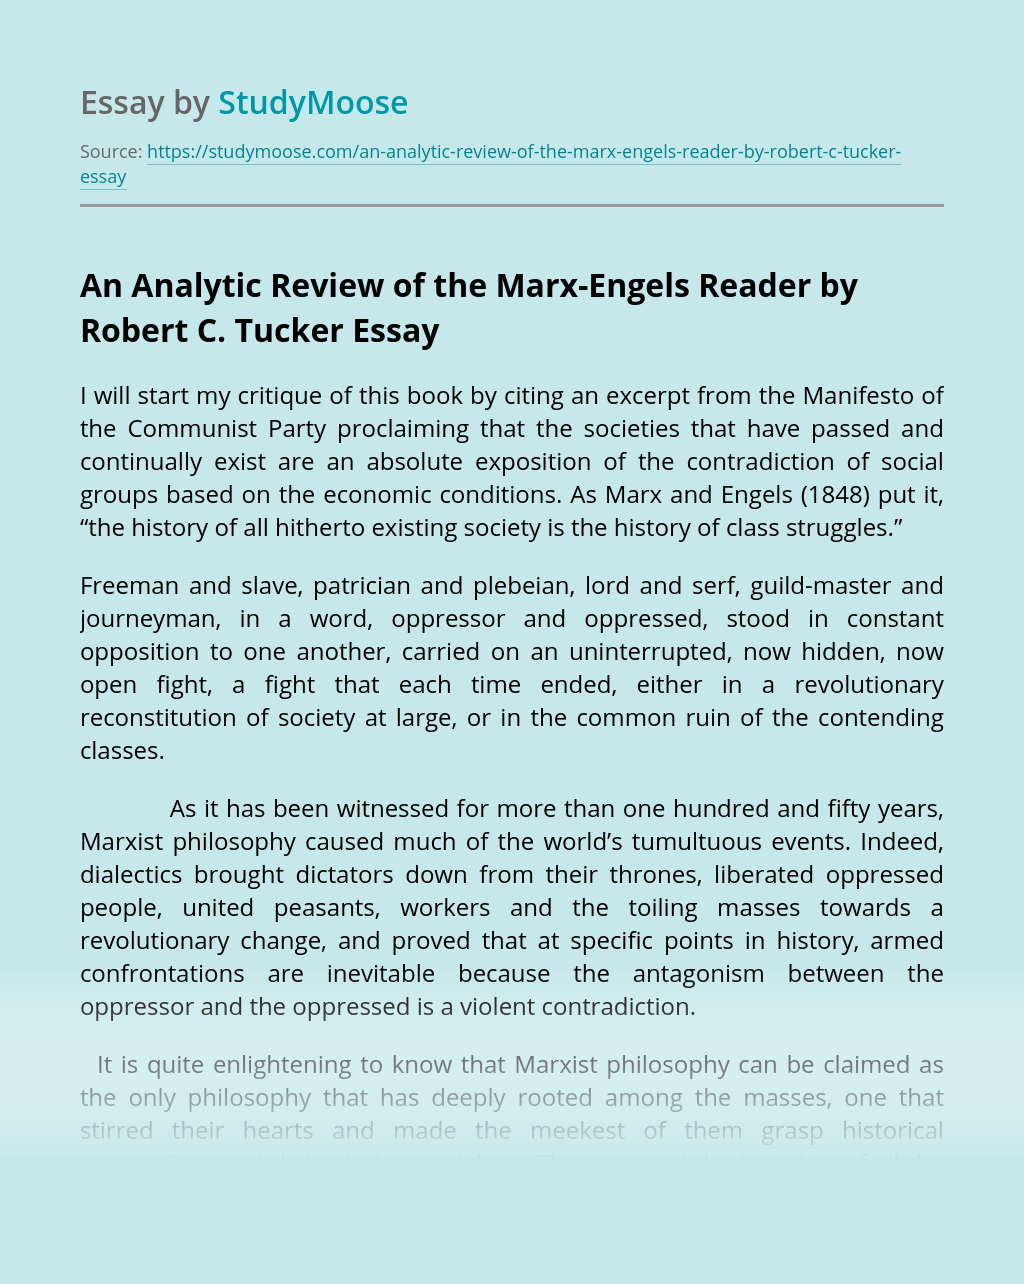 An Analytic Review of the Marx-Engels Reader by Robert C. Tucker